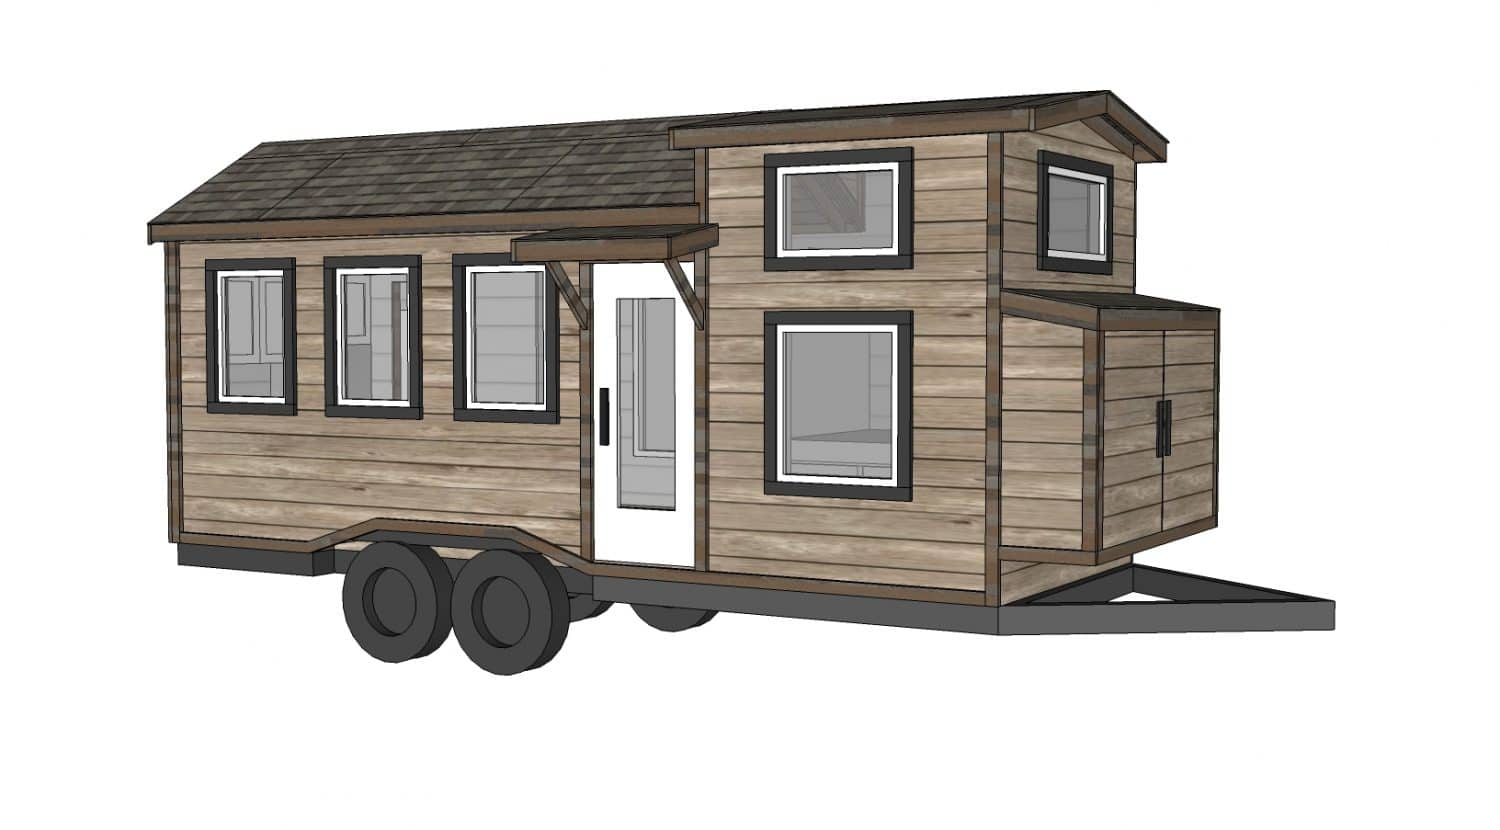 Construire sa propre tiny house plans gratuits et for Tiny home designs plans